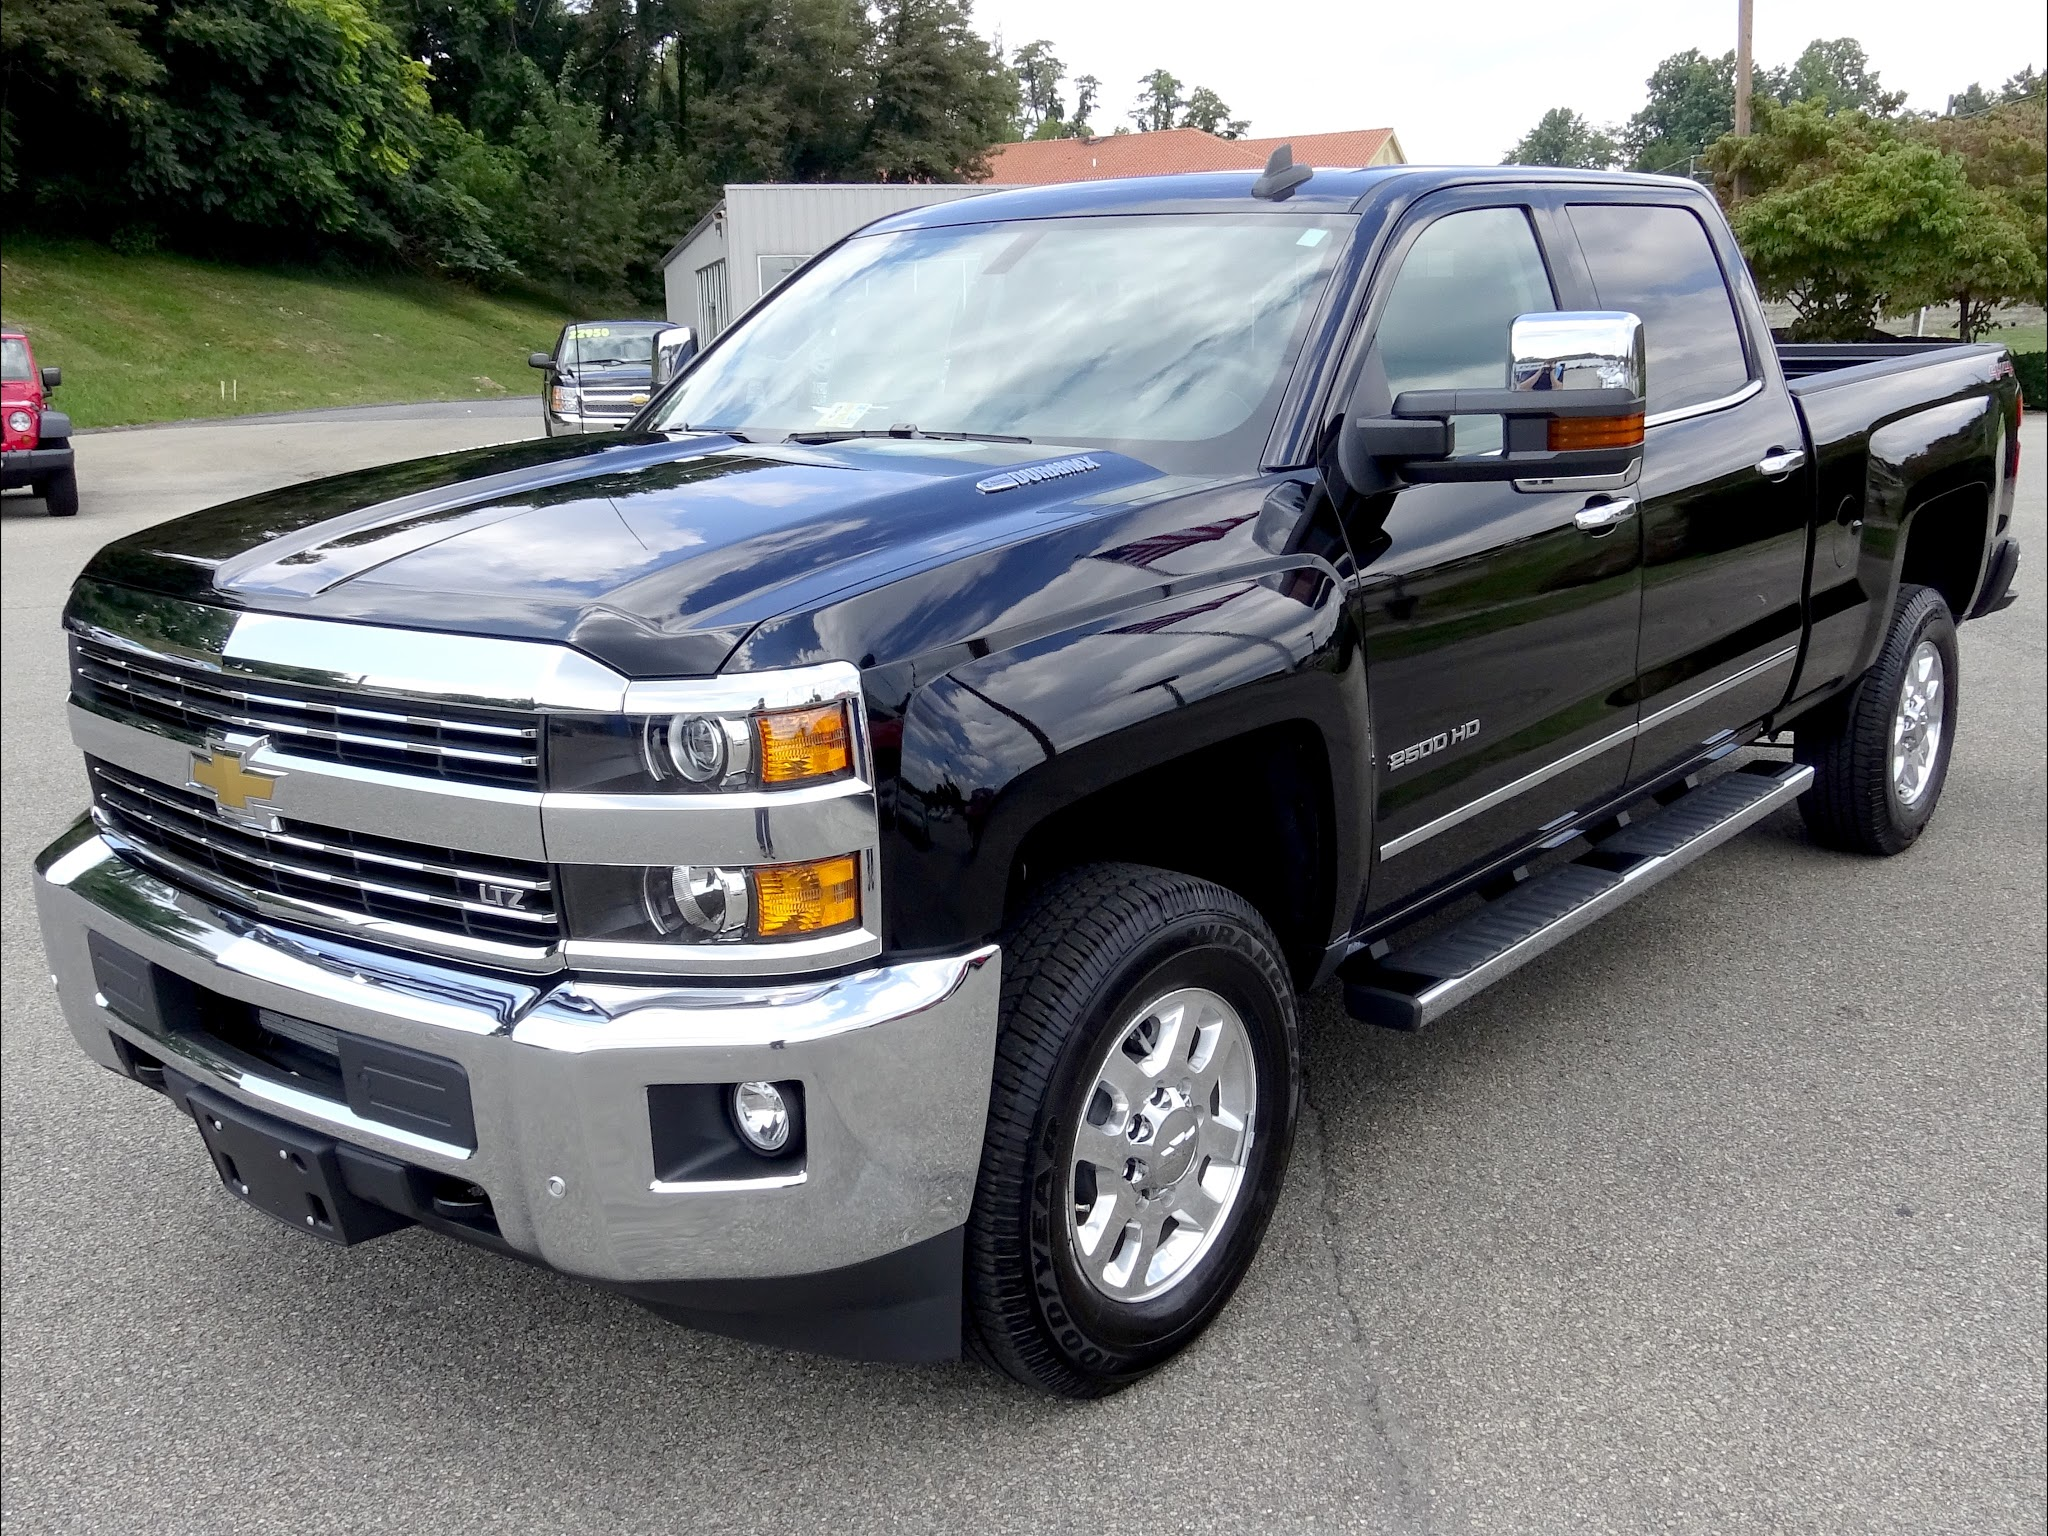 2015 chevy silverado 2500hd duramax images galleries with a bite. Black Bedroom Furniture Sets. Home Design Ideas